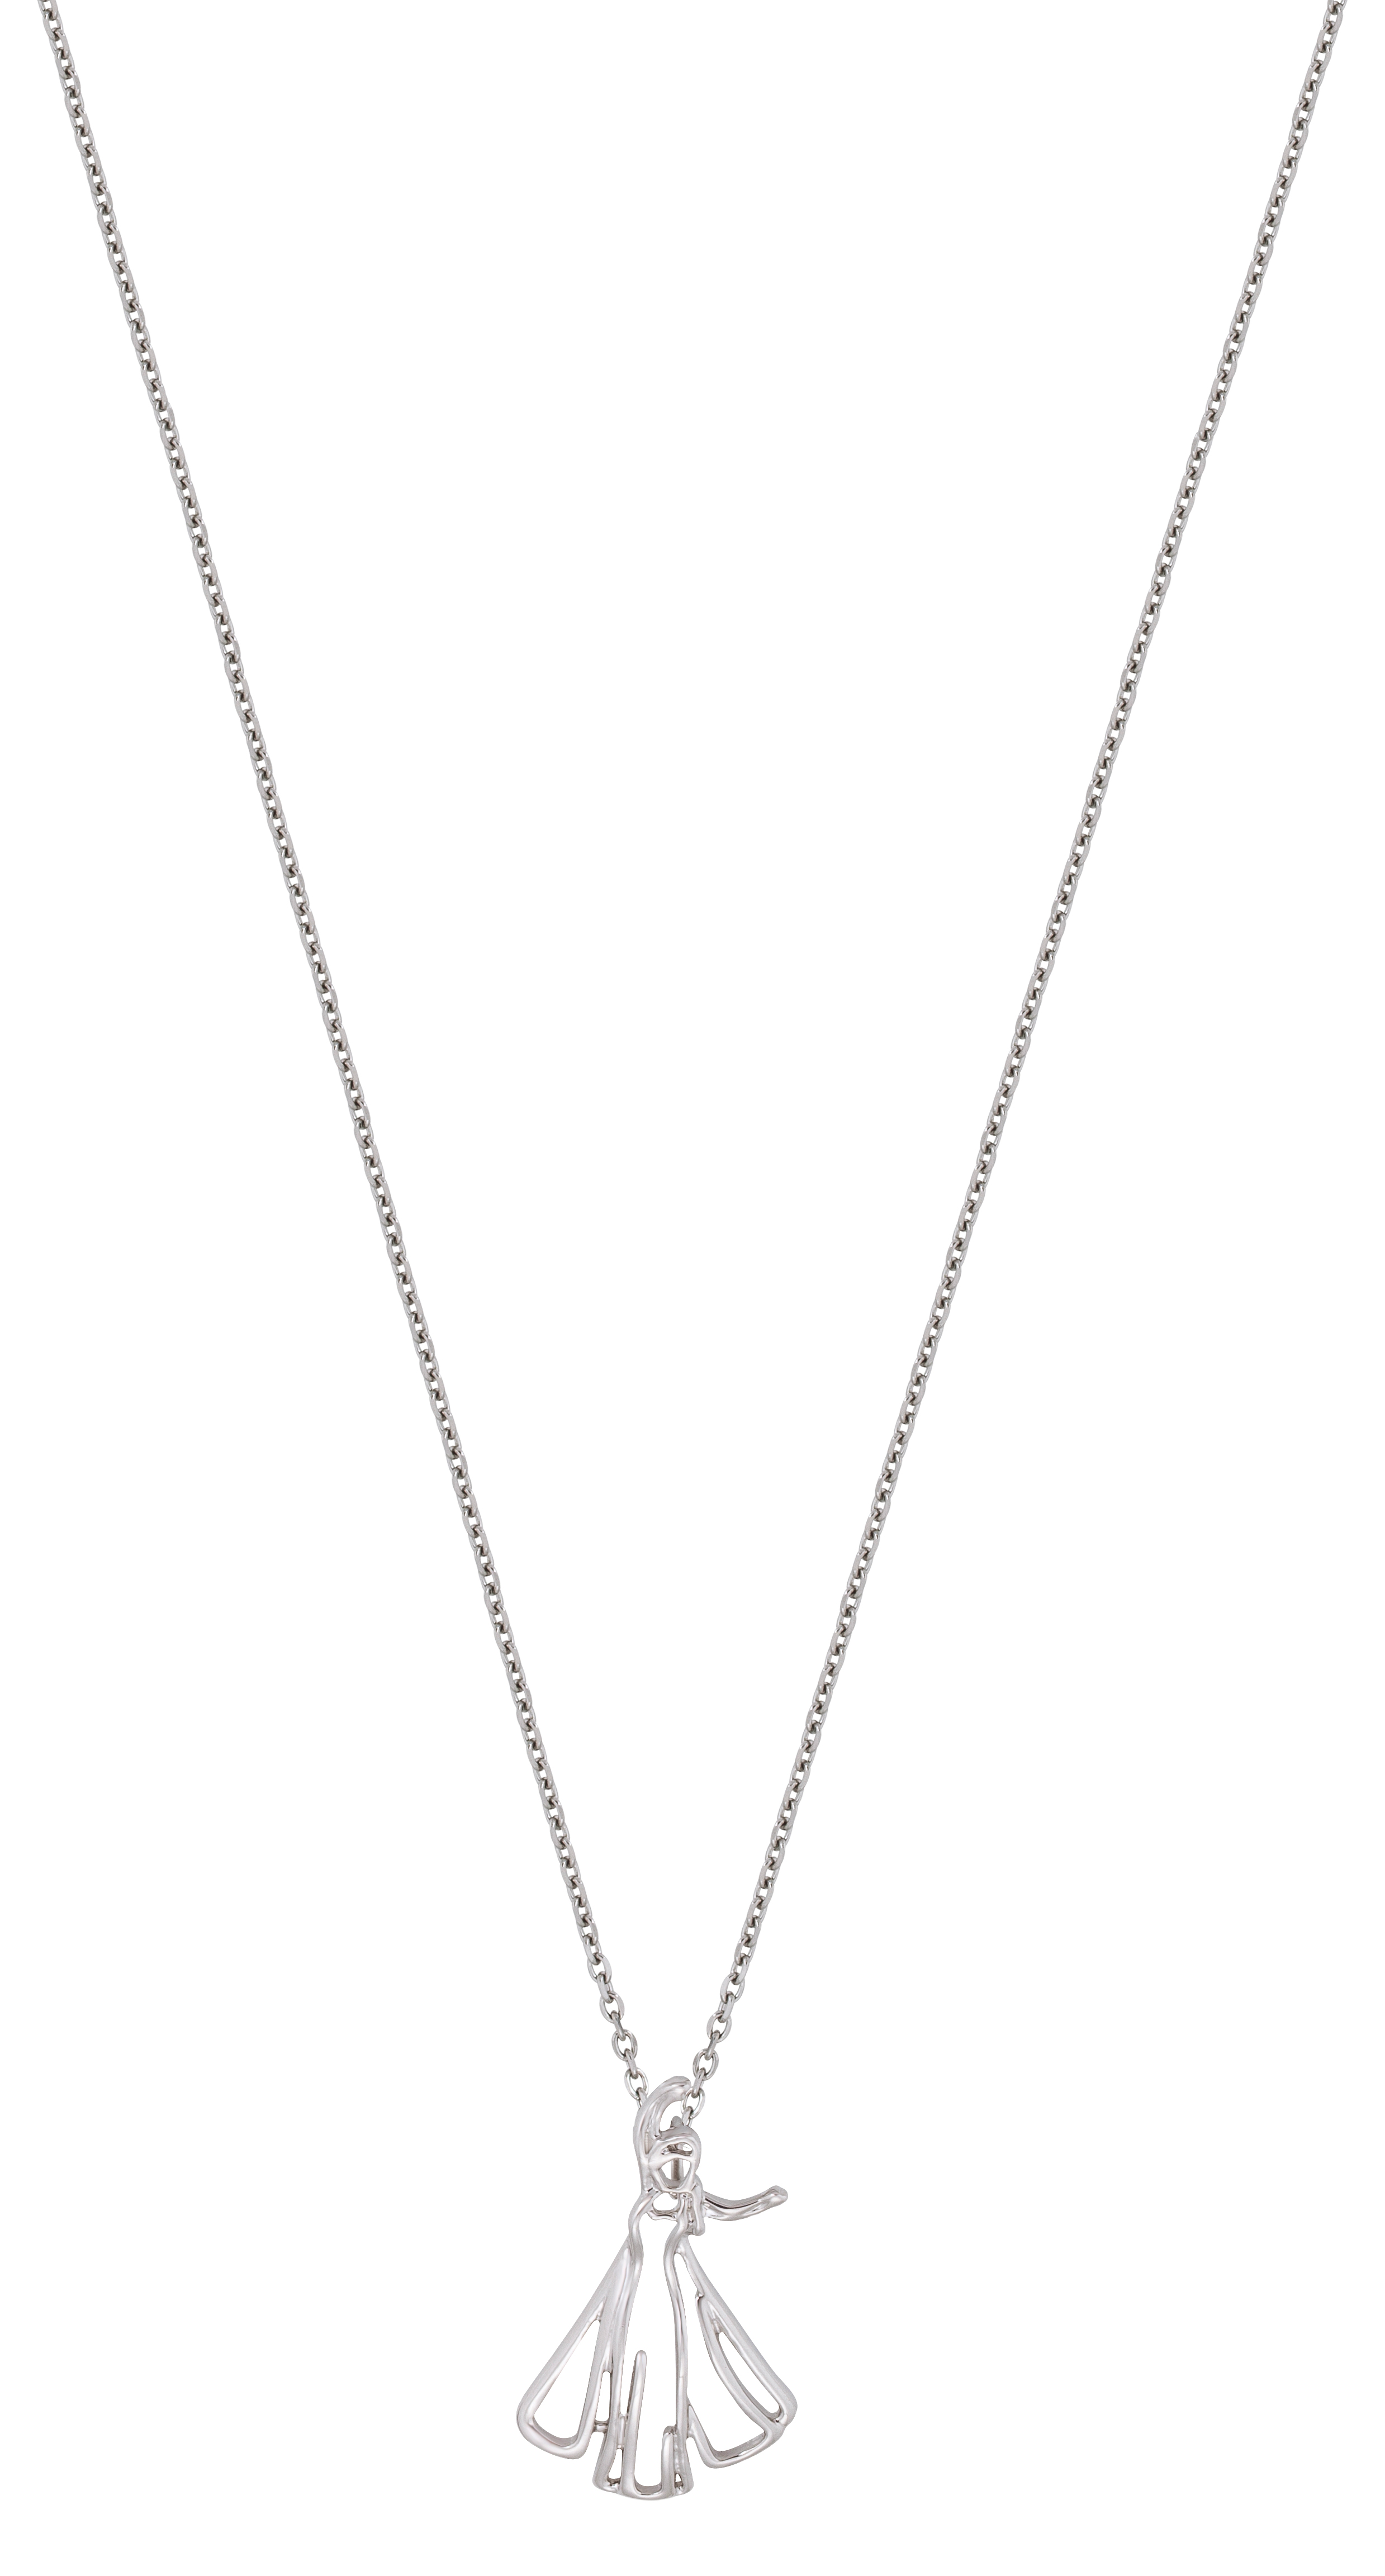 Cooling Necklaces That You Freeze : White gold plated frozen elsa outline necklace from disney